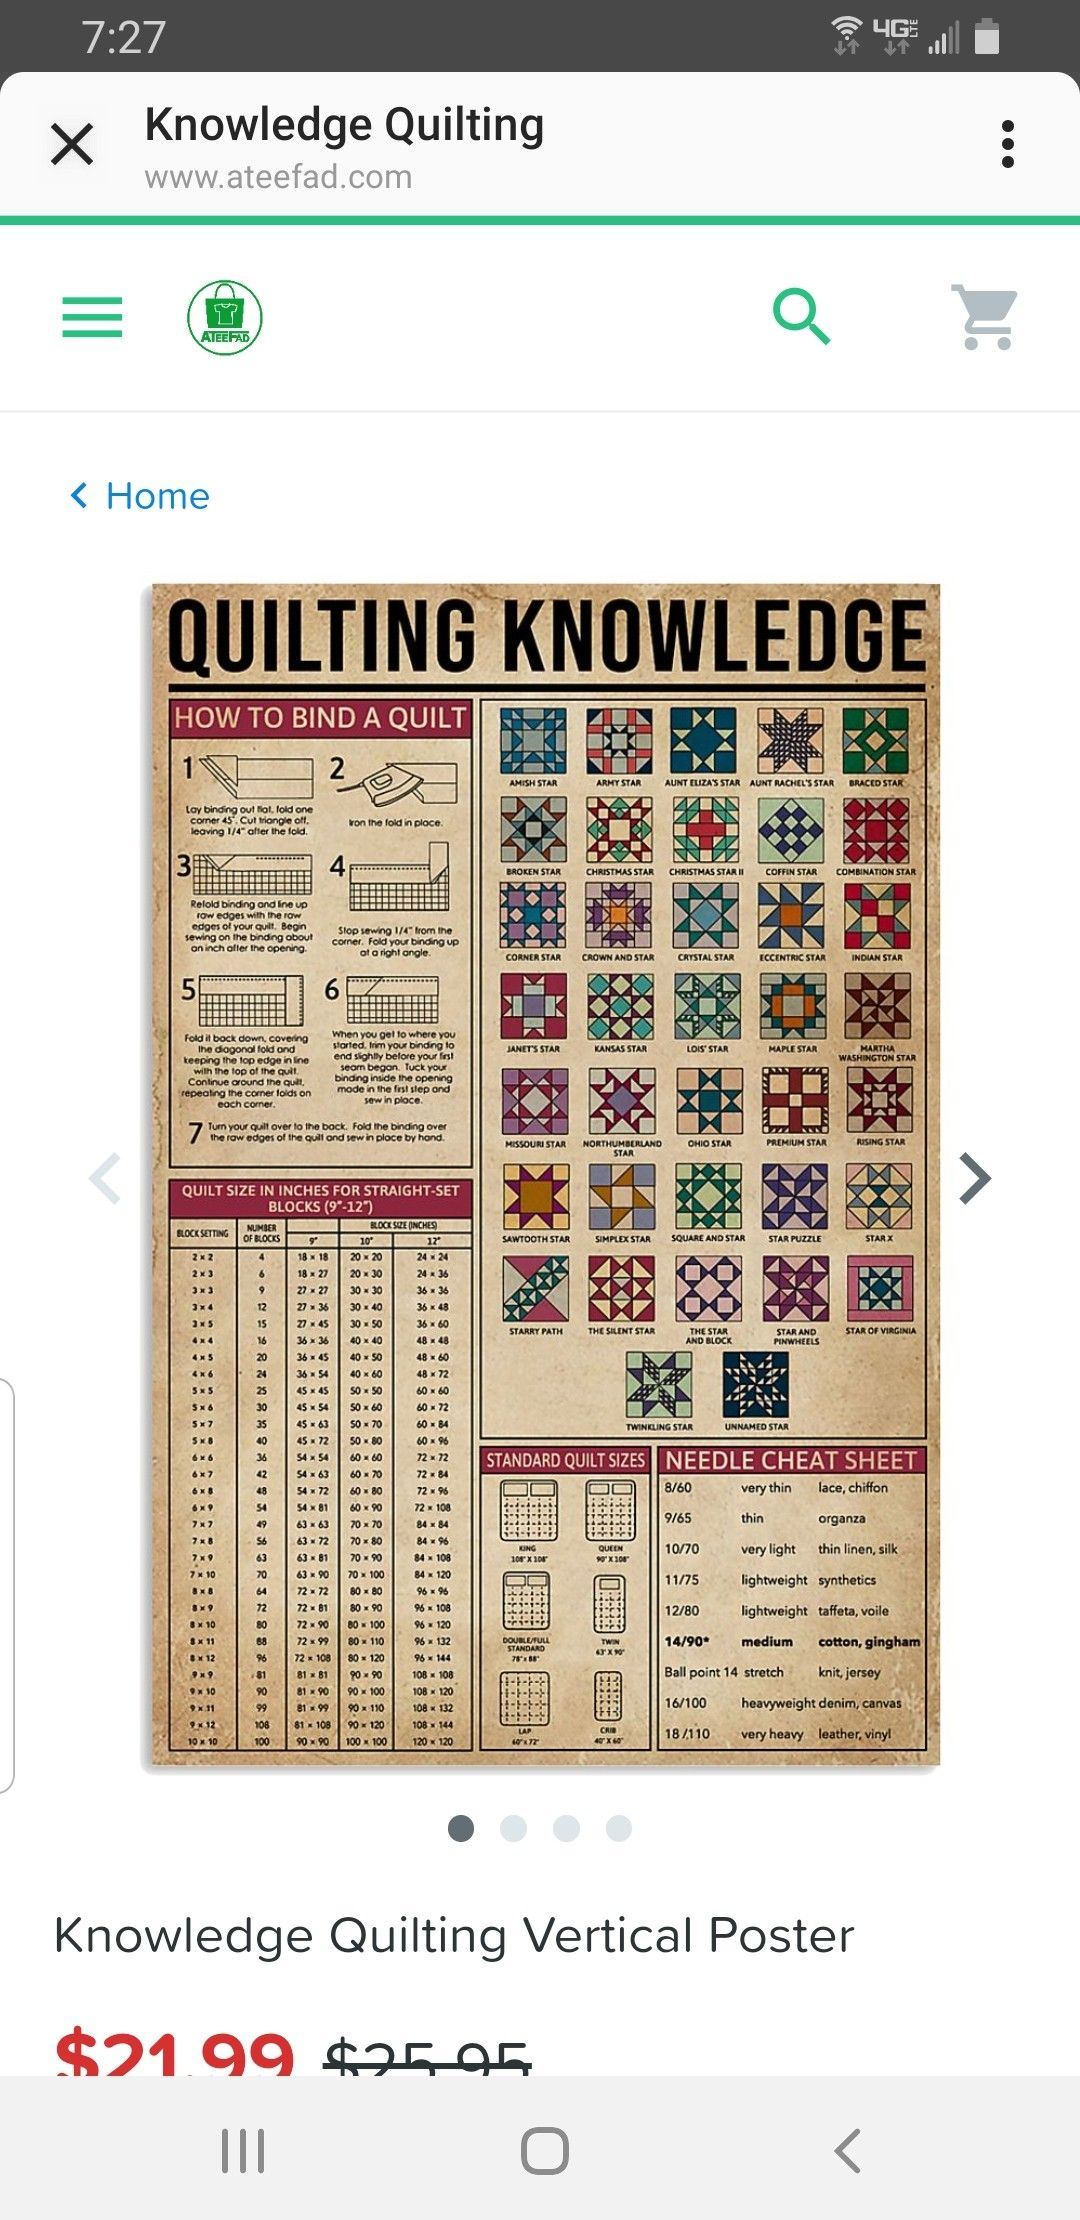 Pin By Marcie Carlson On Quilts Ideas Quilts 10 Things Cheat Sheets [ 2220 x 1080 Pixel ]